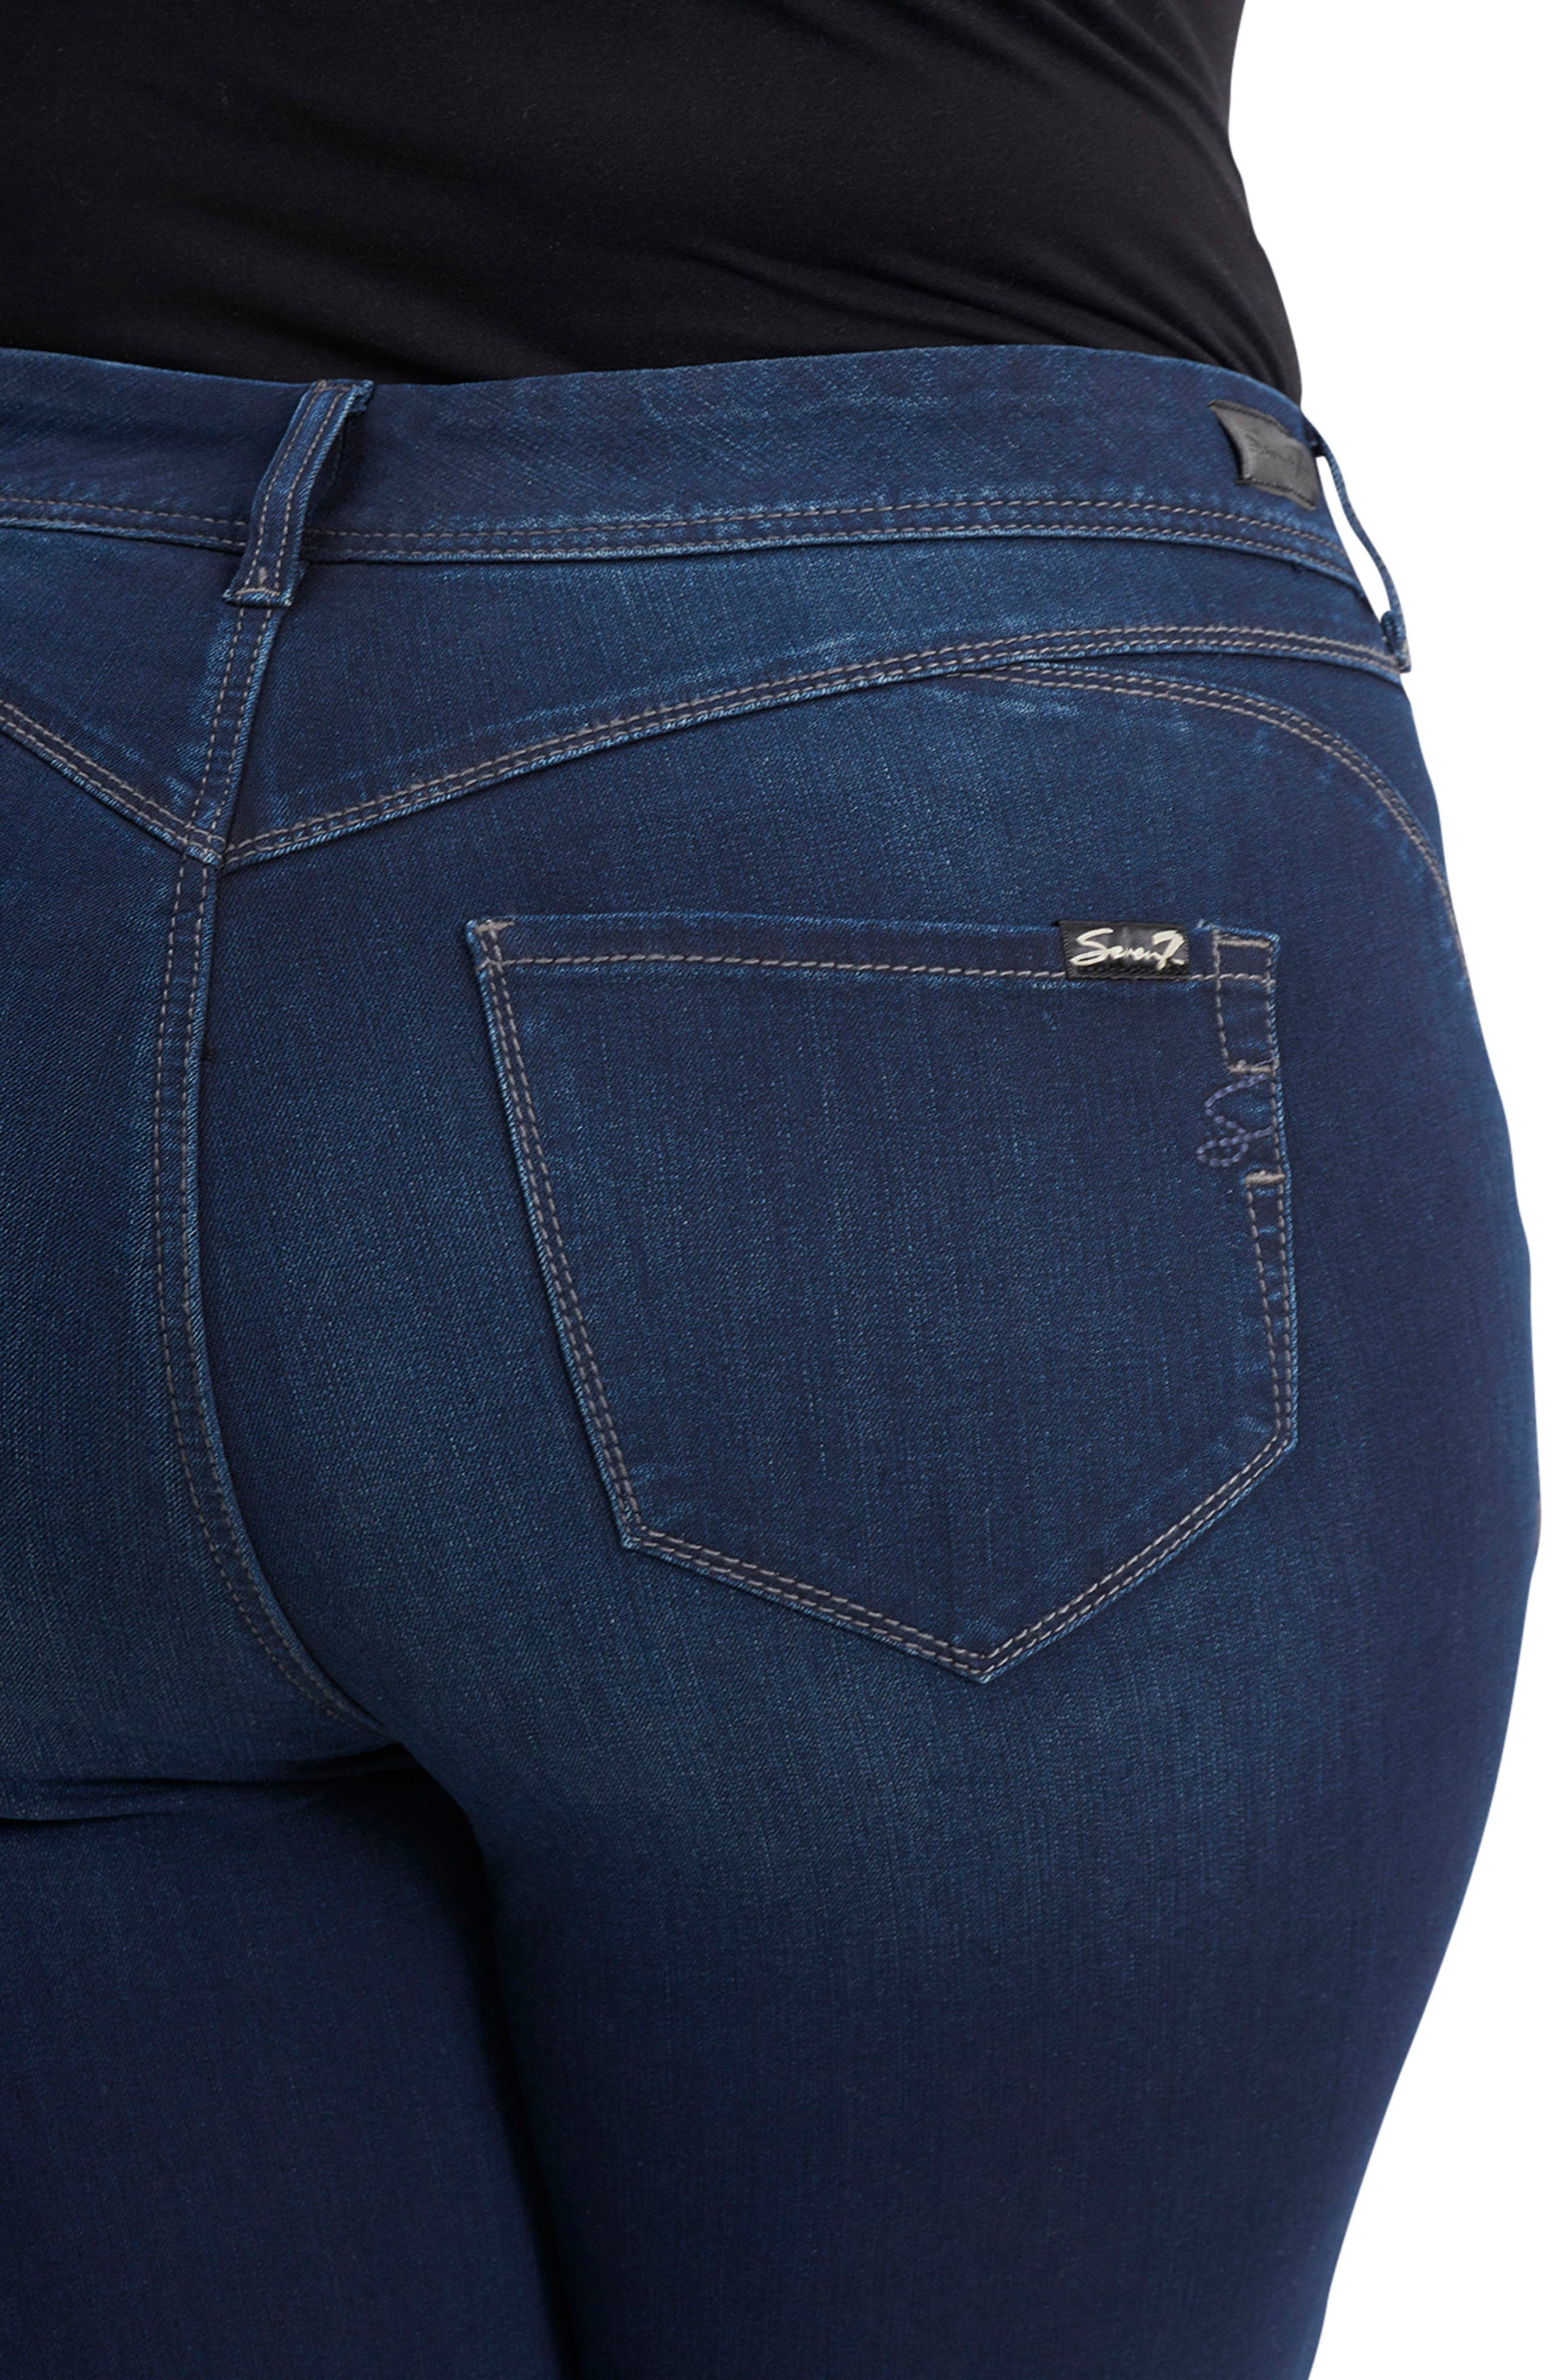 Bootyshaper Skinny Jeans,                             Alternate thumbnail 4, color,                             BLUE